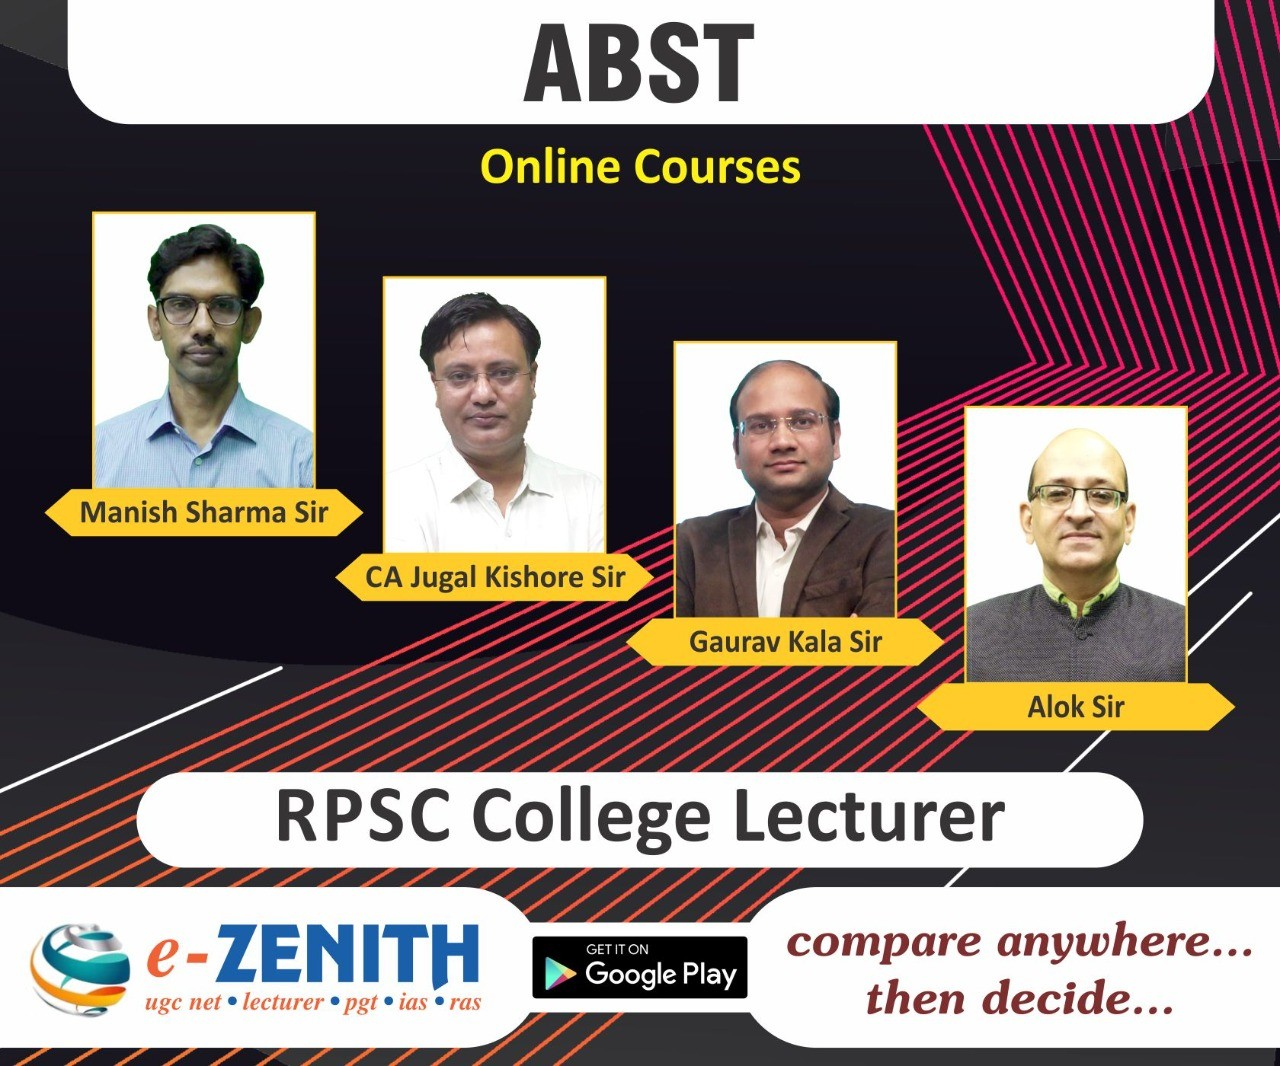 RPSC COLLEGE LECTURER ABST ONLINE COURSE